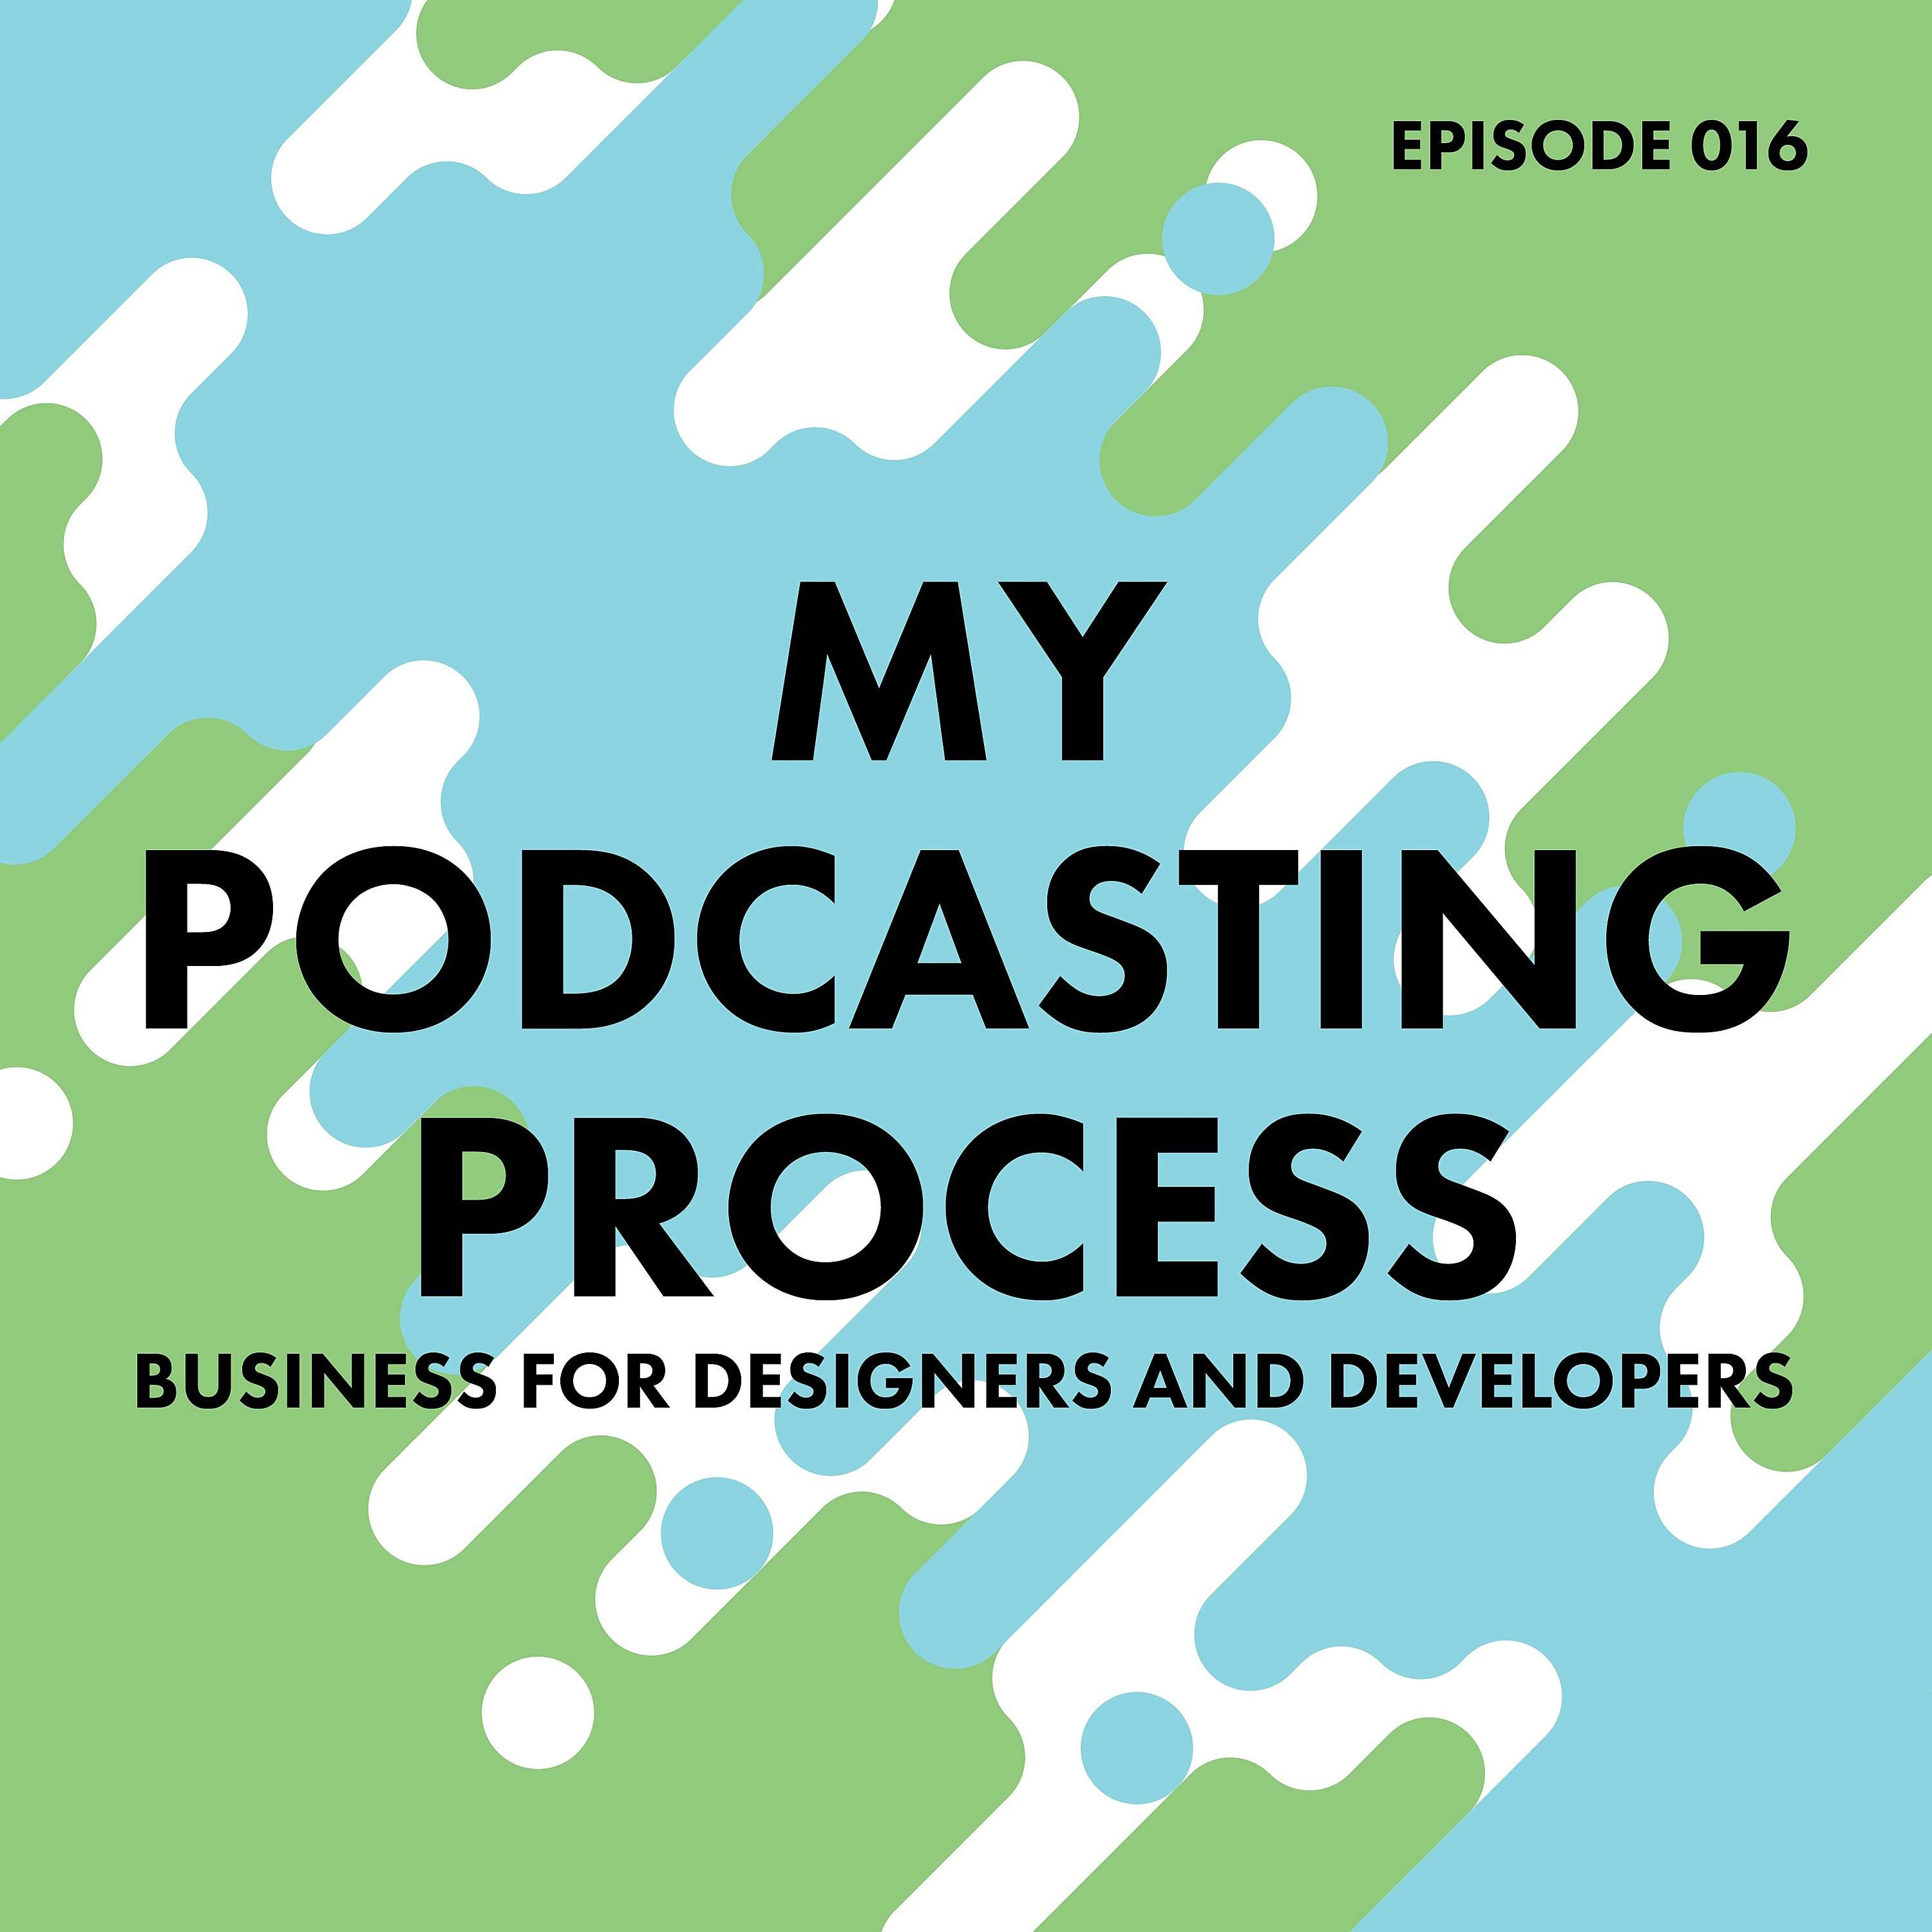 16. My Podcasting Process